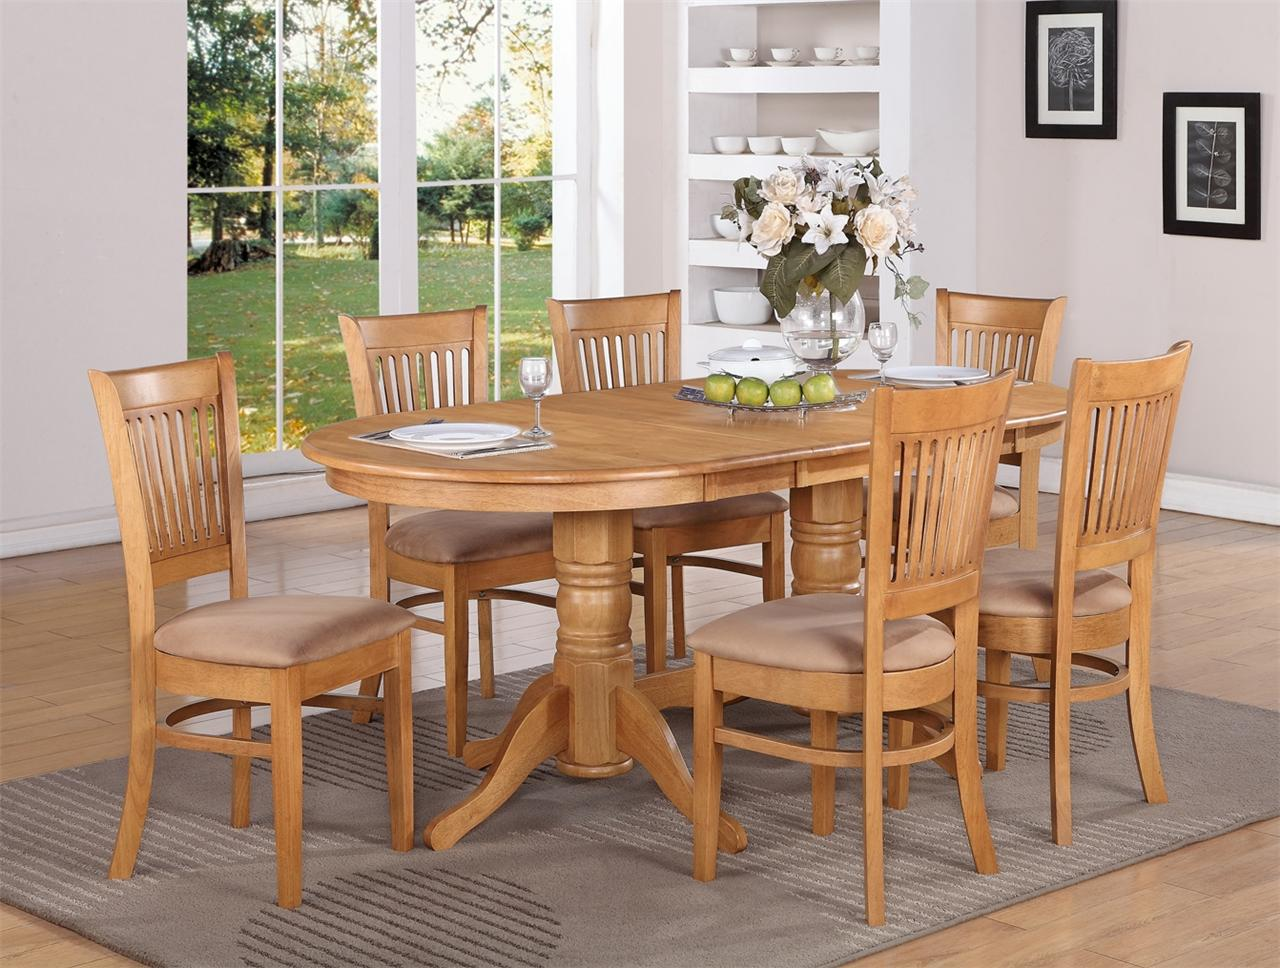 9 Pc Vancouver Oval Dinette Kitchen Dining Set Table W 8 Upholster Chairs In Oak Ebay